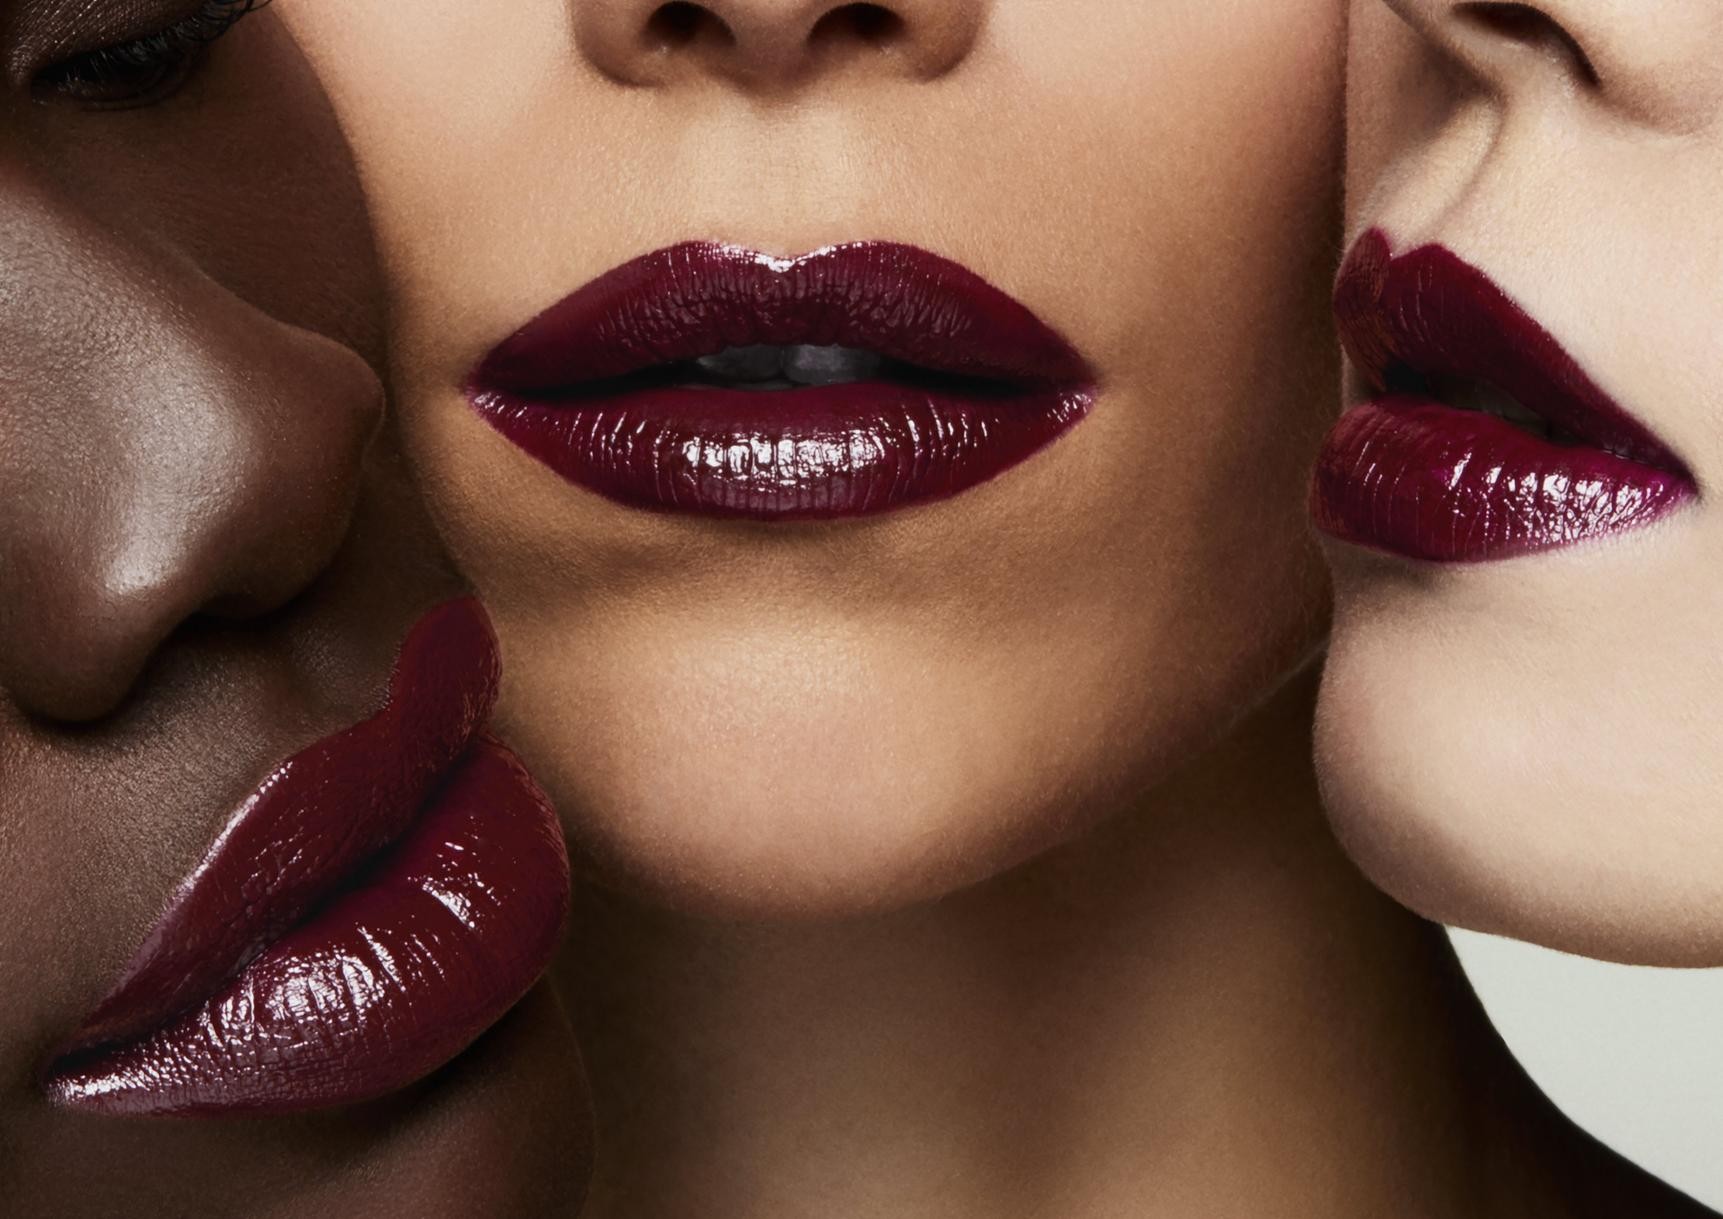 Tom Ford Lip Color in Bruised Plum (Image via Tom Ford)